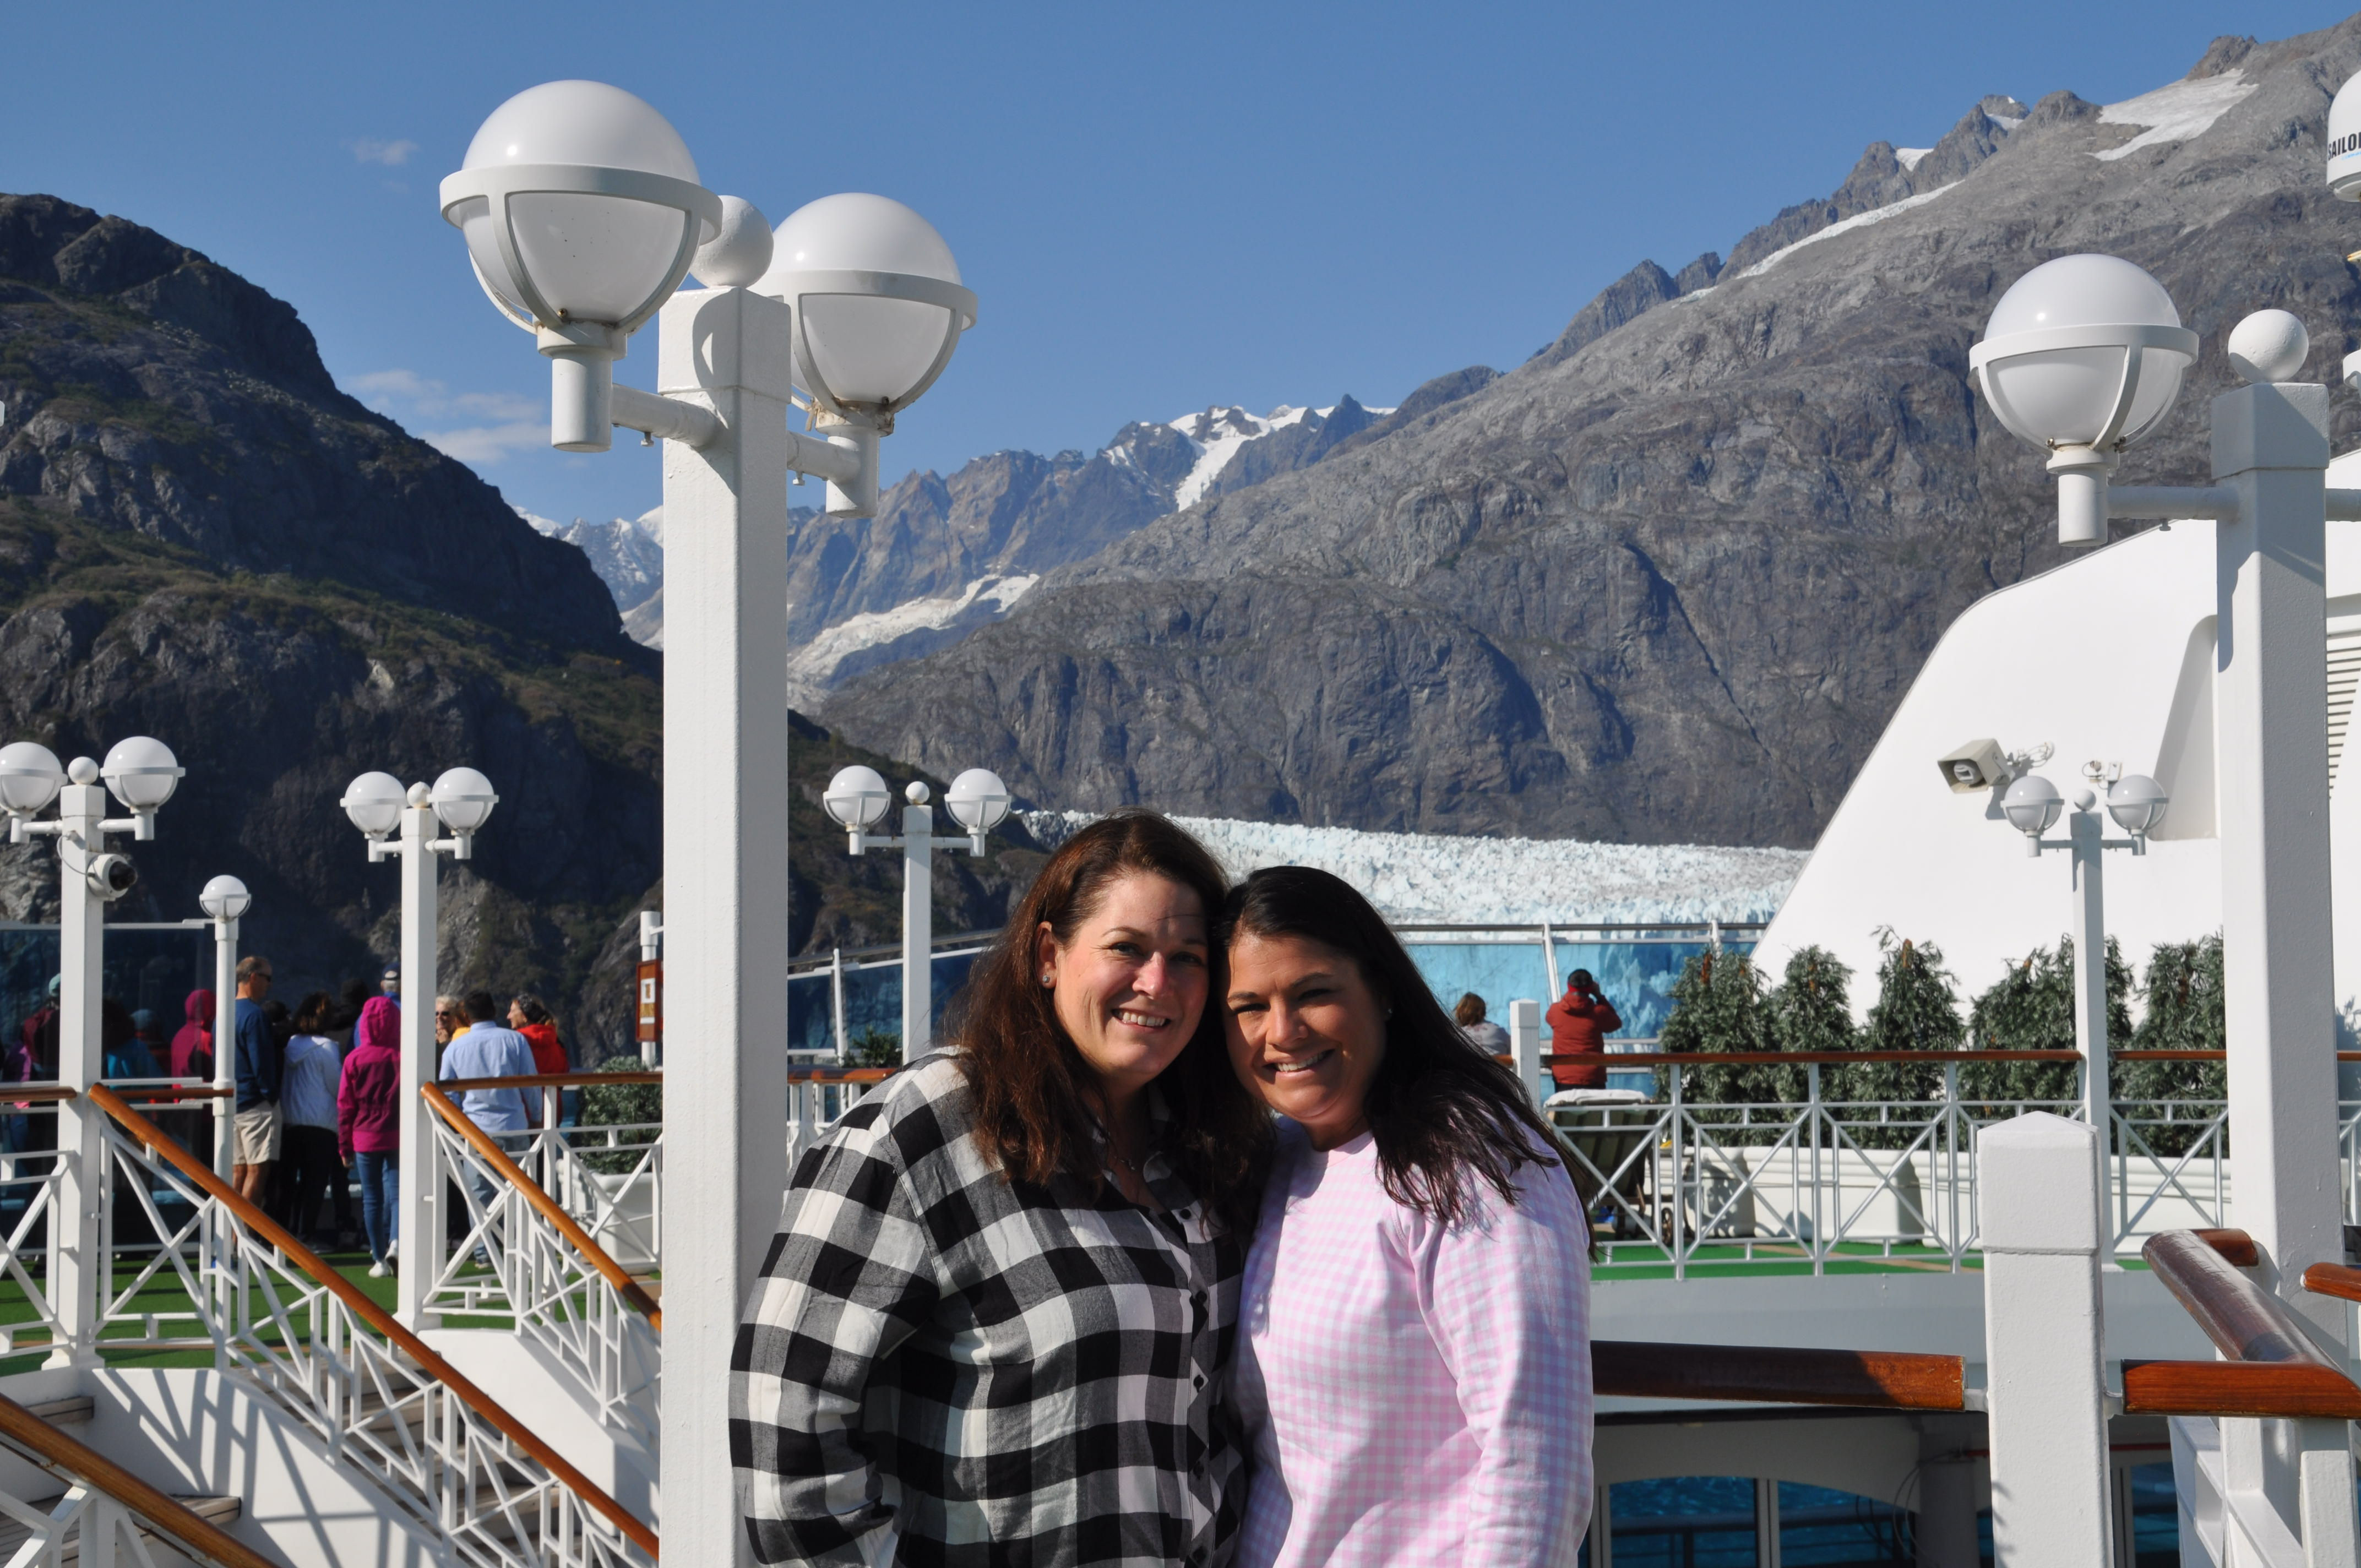 Stephanie and sister-in-law Megan in Alaska